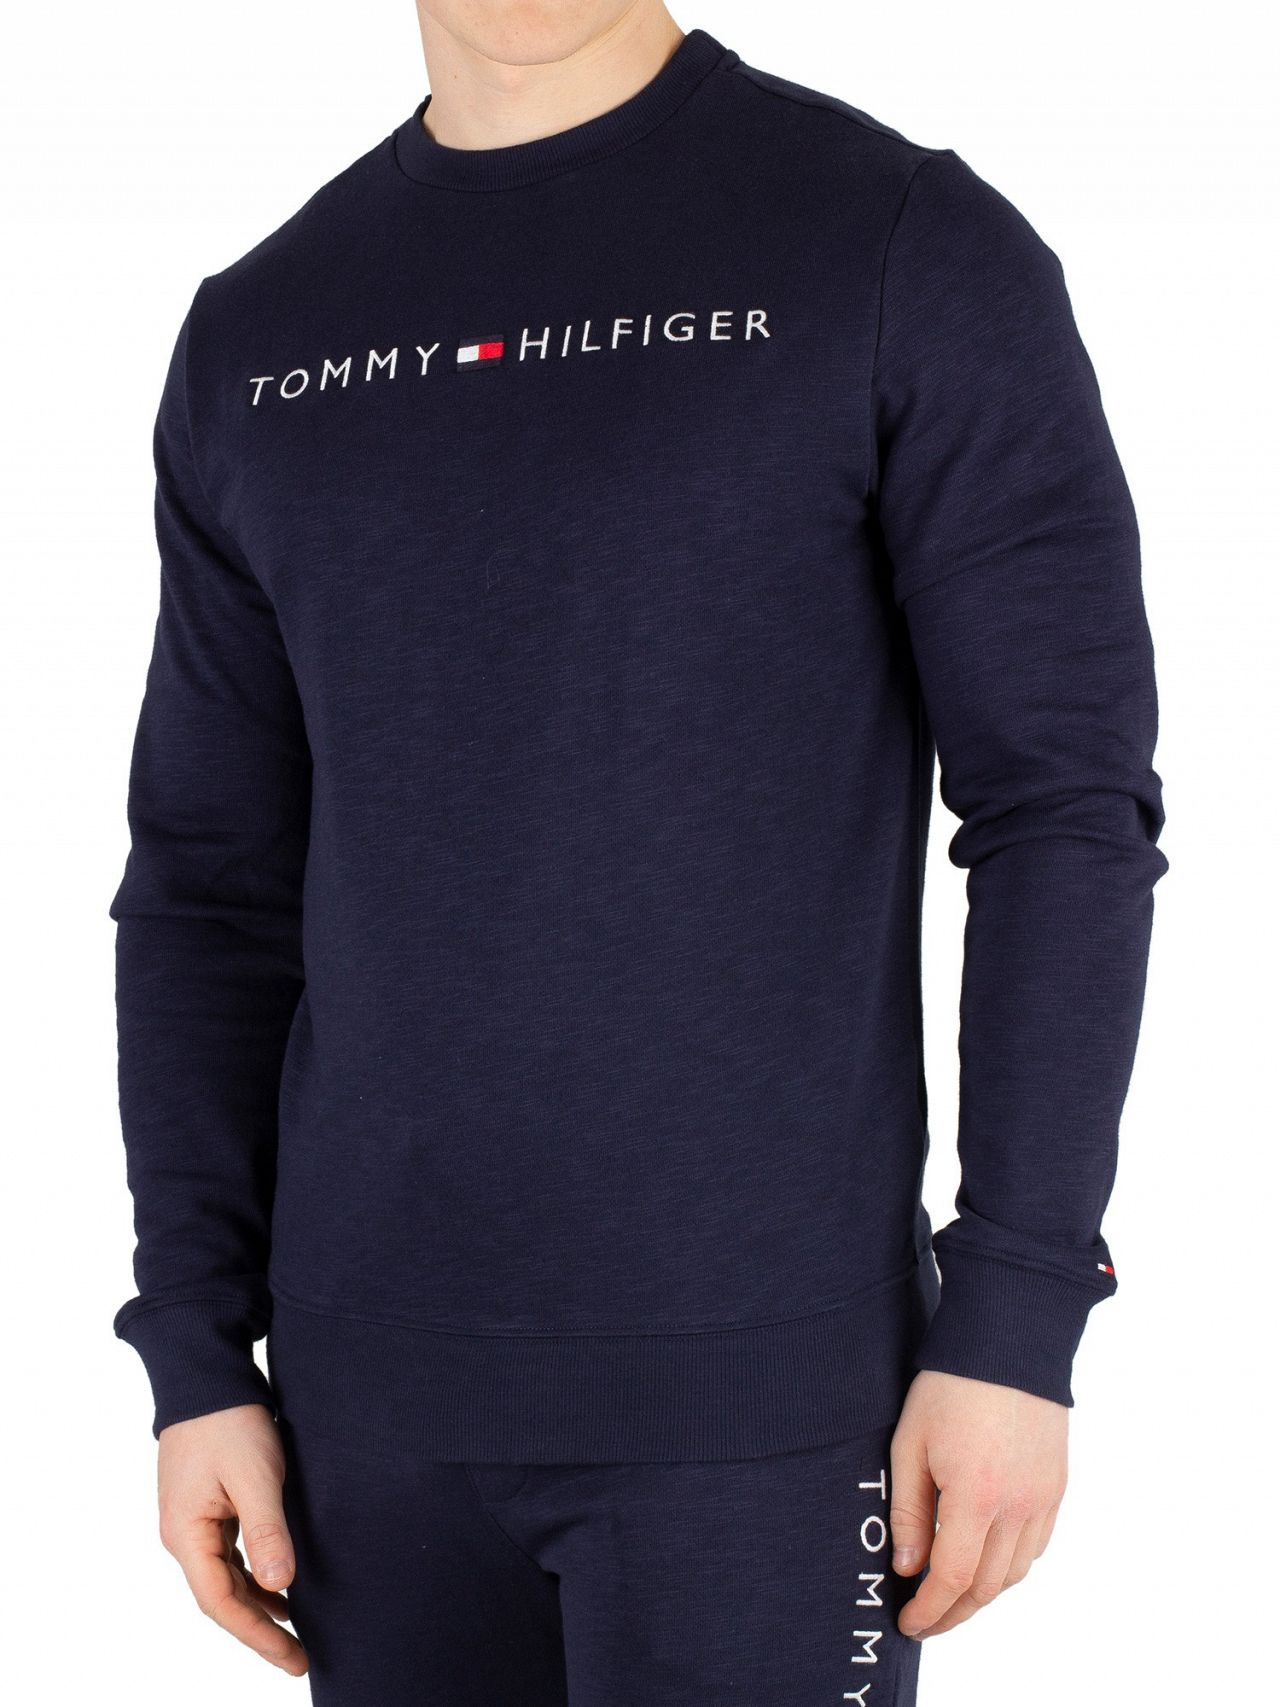 6d3596f6 Tommy Hilfiger Navy Blazer Graphic Sweatshirt. Tap to expand